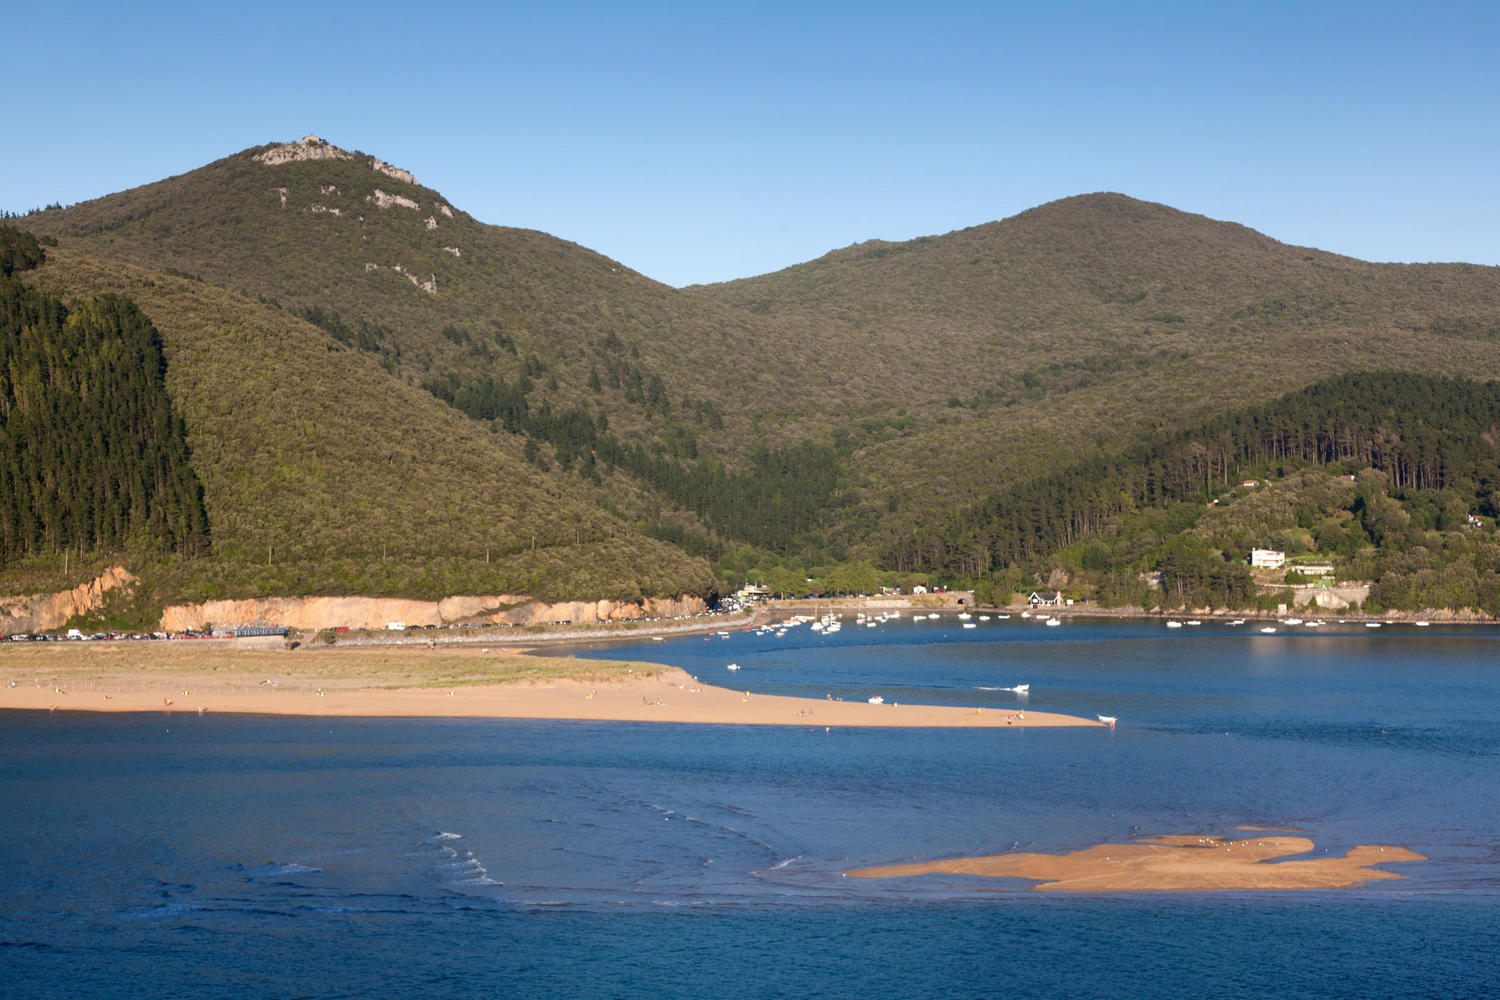 The Urdaibai Biosphere Reserve and river